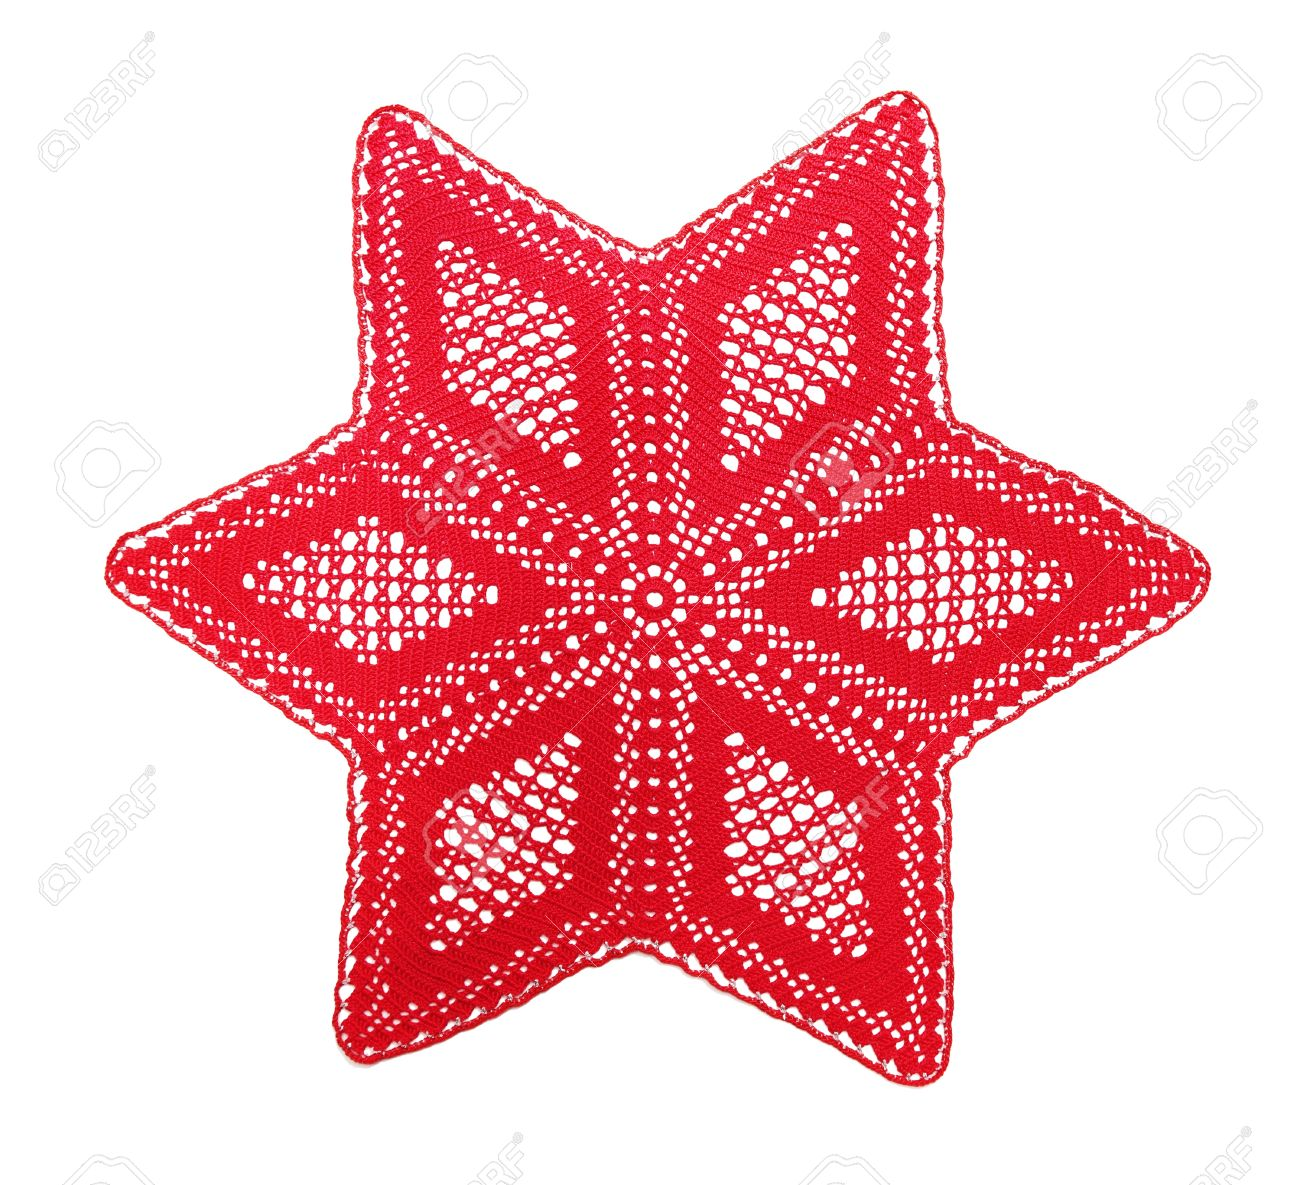 Openwork Crochet Doily, The Christmas Star, Isolated On White Stock ...